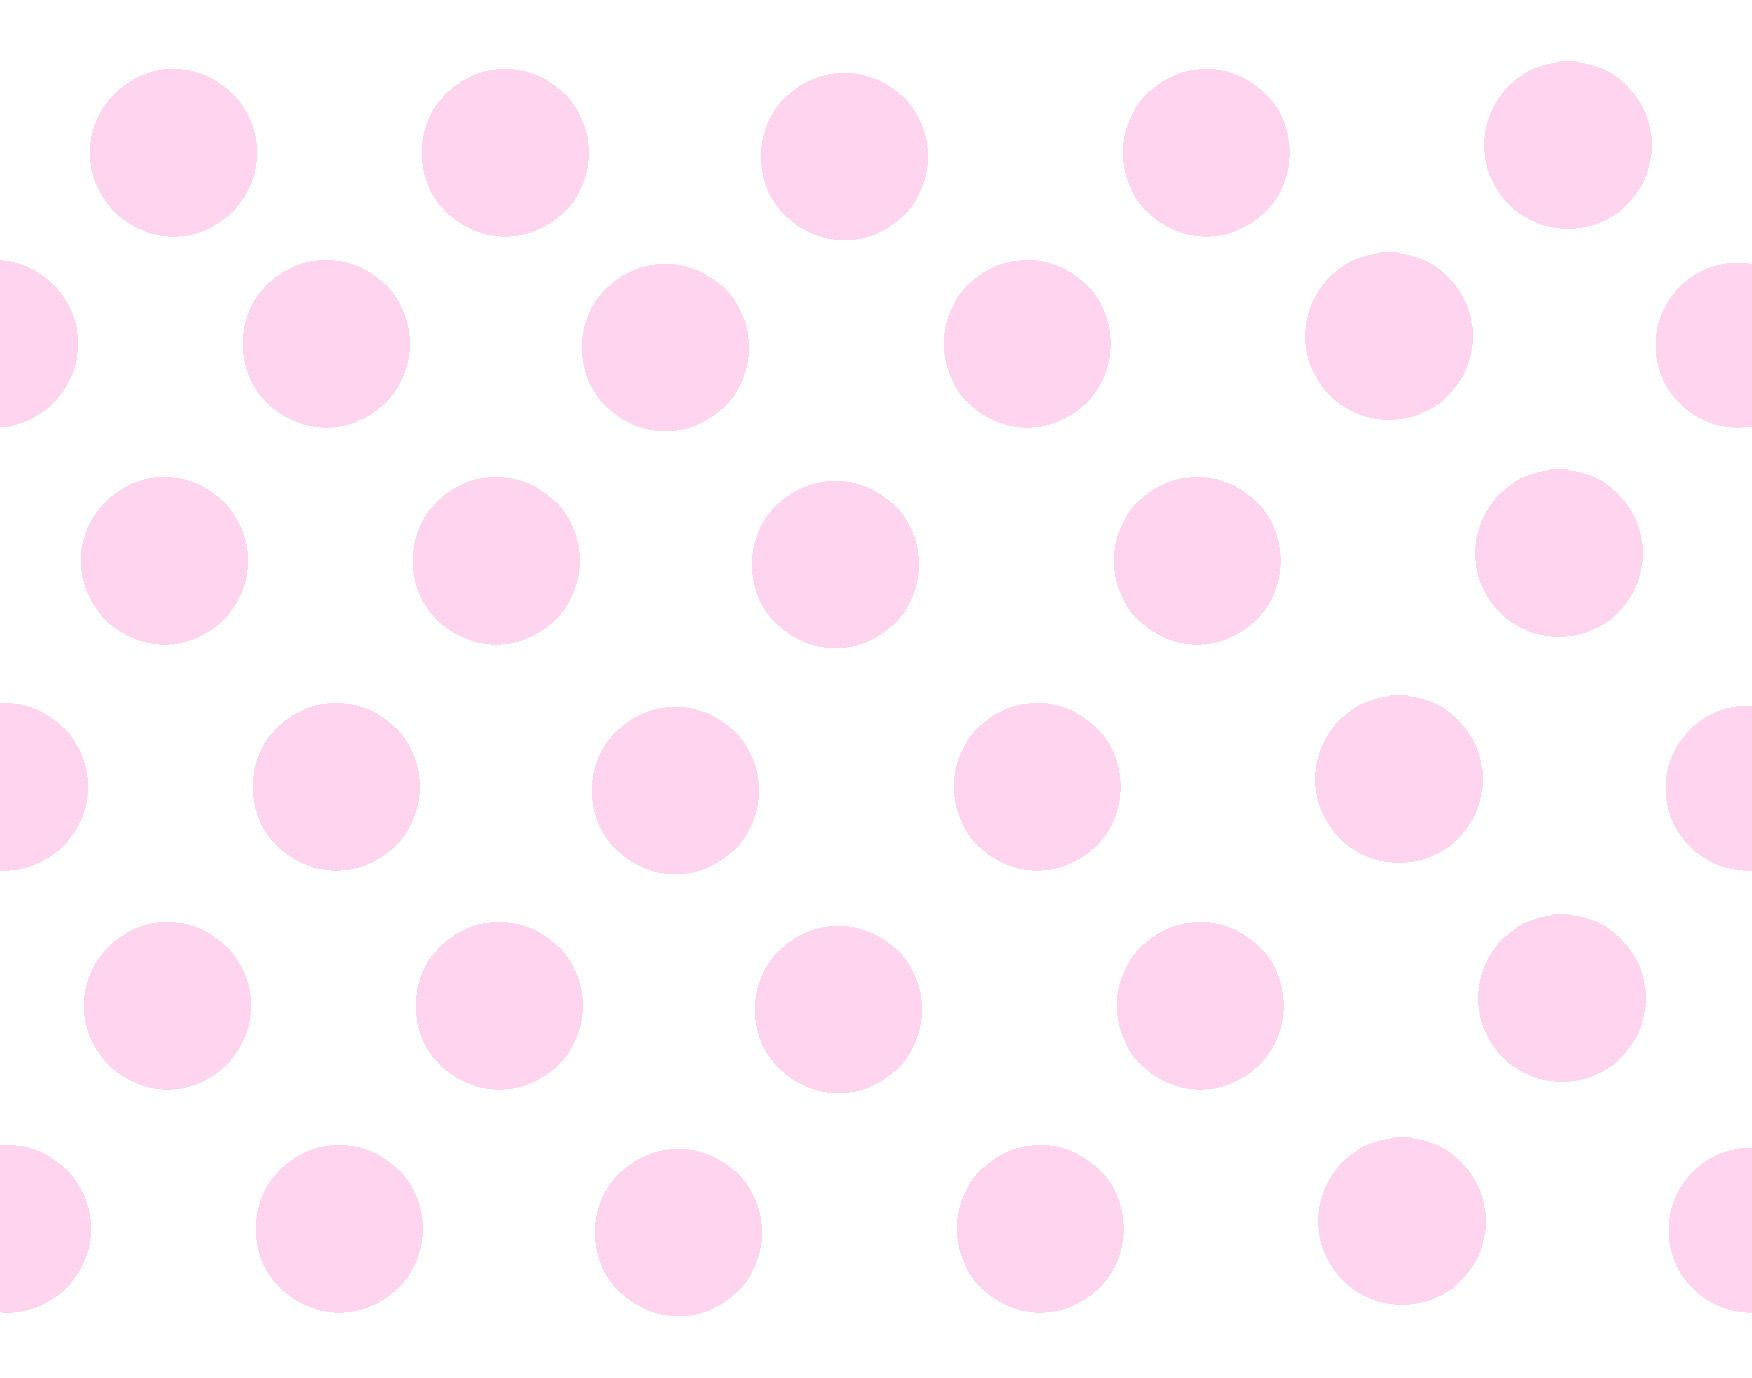 Cute polka dot backgrounds polka dot pink blog backgrounds free cute polka dot backgrounds polka dot pink blog backgrounds free ajilbab portal voltagebd Images